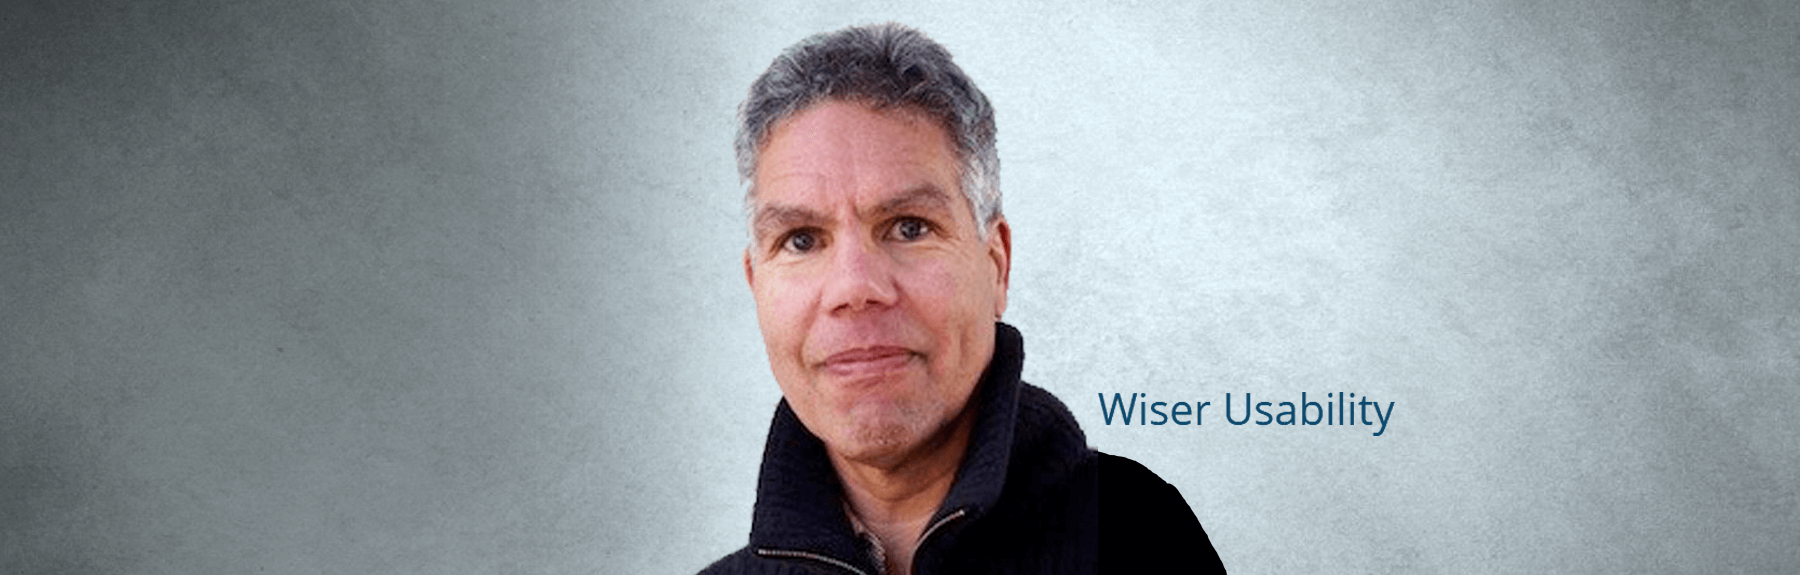 jeff-wiser-usability-ux-older-users-header